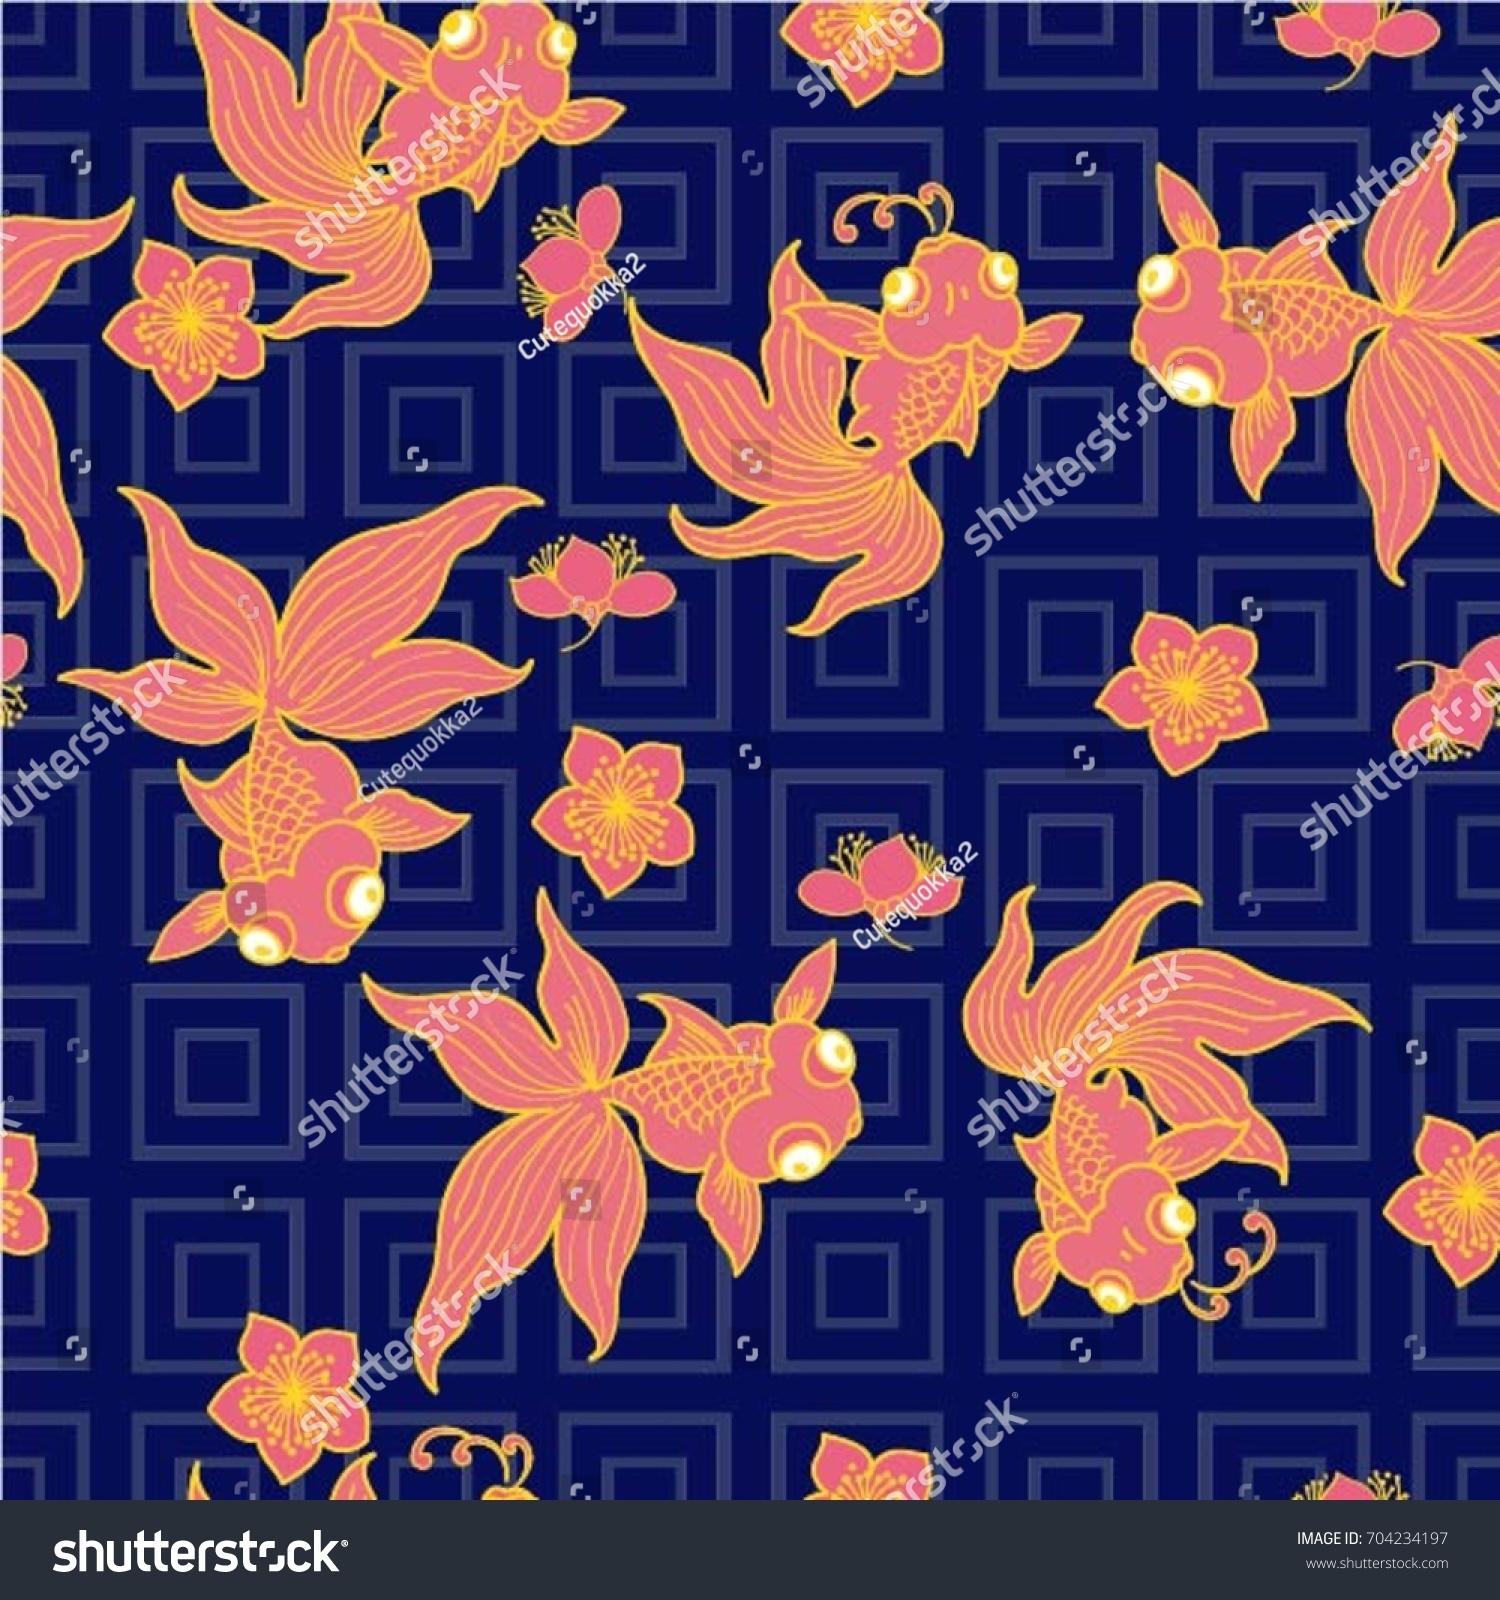 Goldfish popular symbols chinese art their stock vector 704234197 goldfish are popular symbols in chinese art as their name is a homophone for the two buycottarizona Images